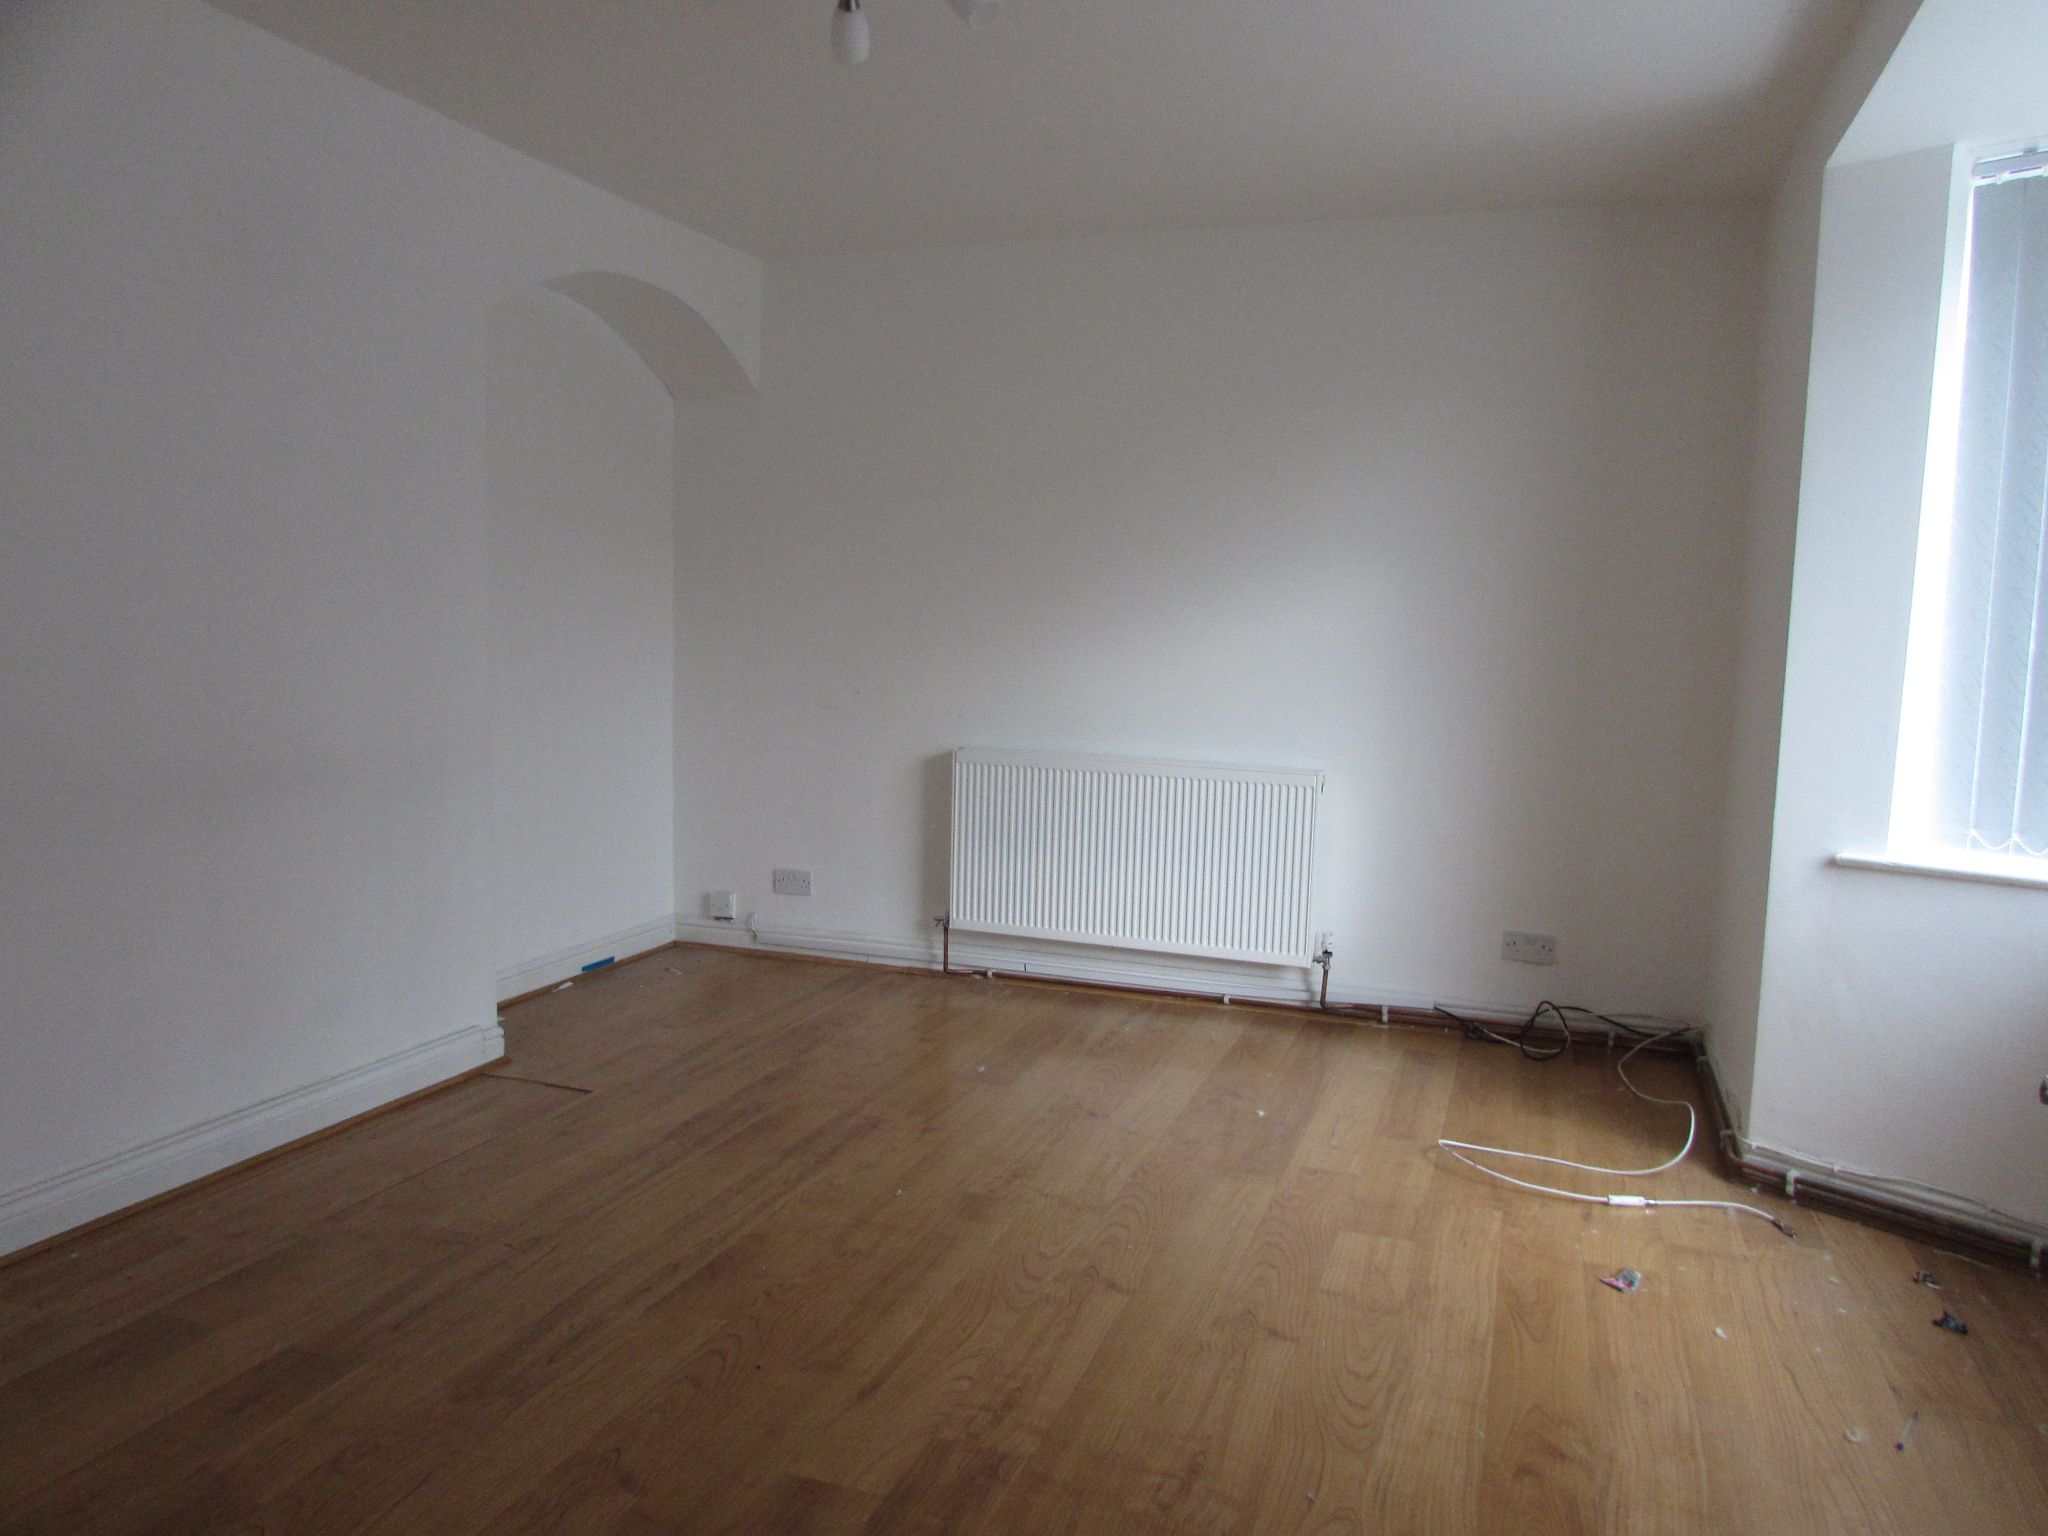 3 Bedroom Semi-detached House To Rent - Living Area